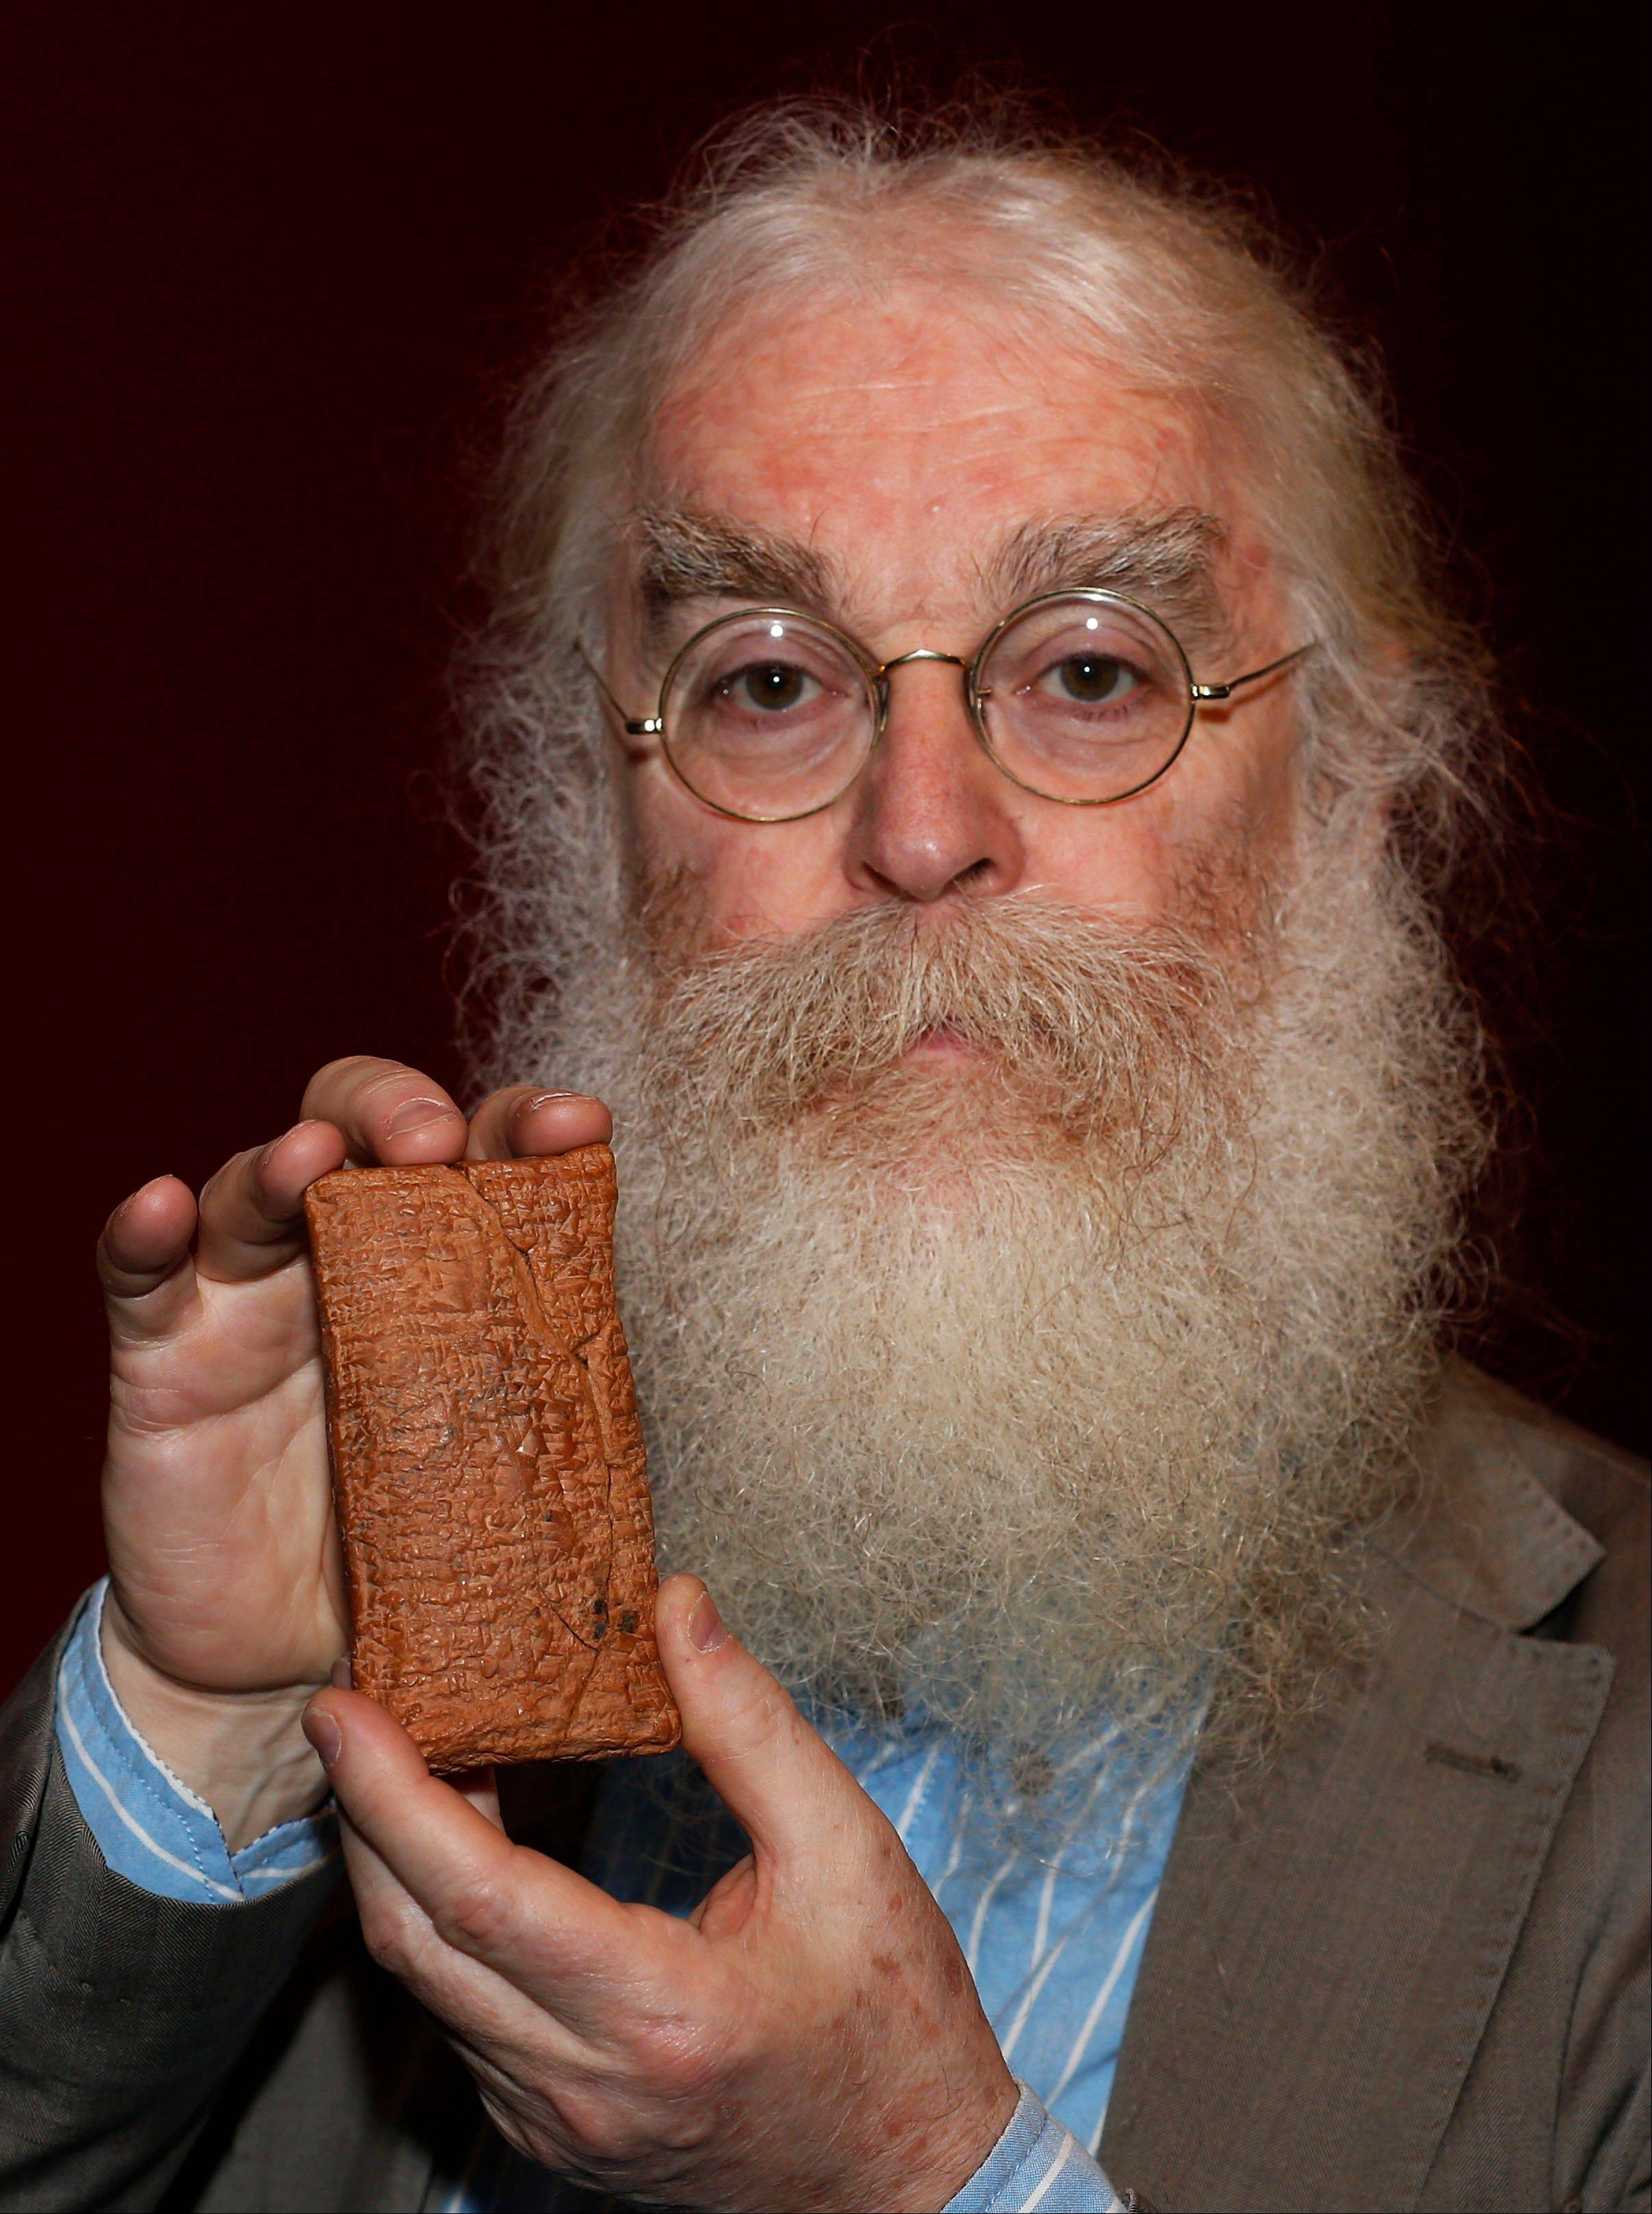 Irving Finkel, curator in charge of cuneiform clay tablets at the British Museum, poses Friday with the 4,000 year old clay tablet containing the story of the Ark and the flood during the launch of his book 'The Ark Before Noah' at the British Museum in London.